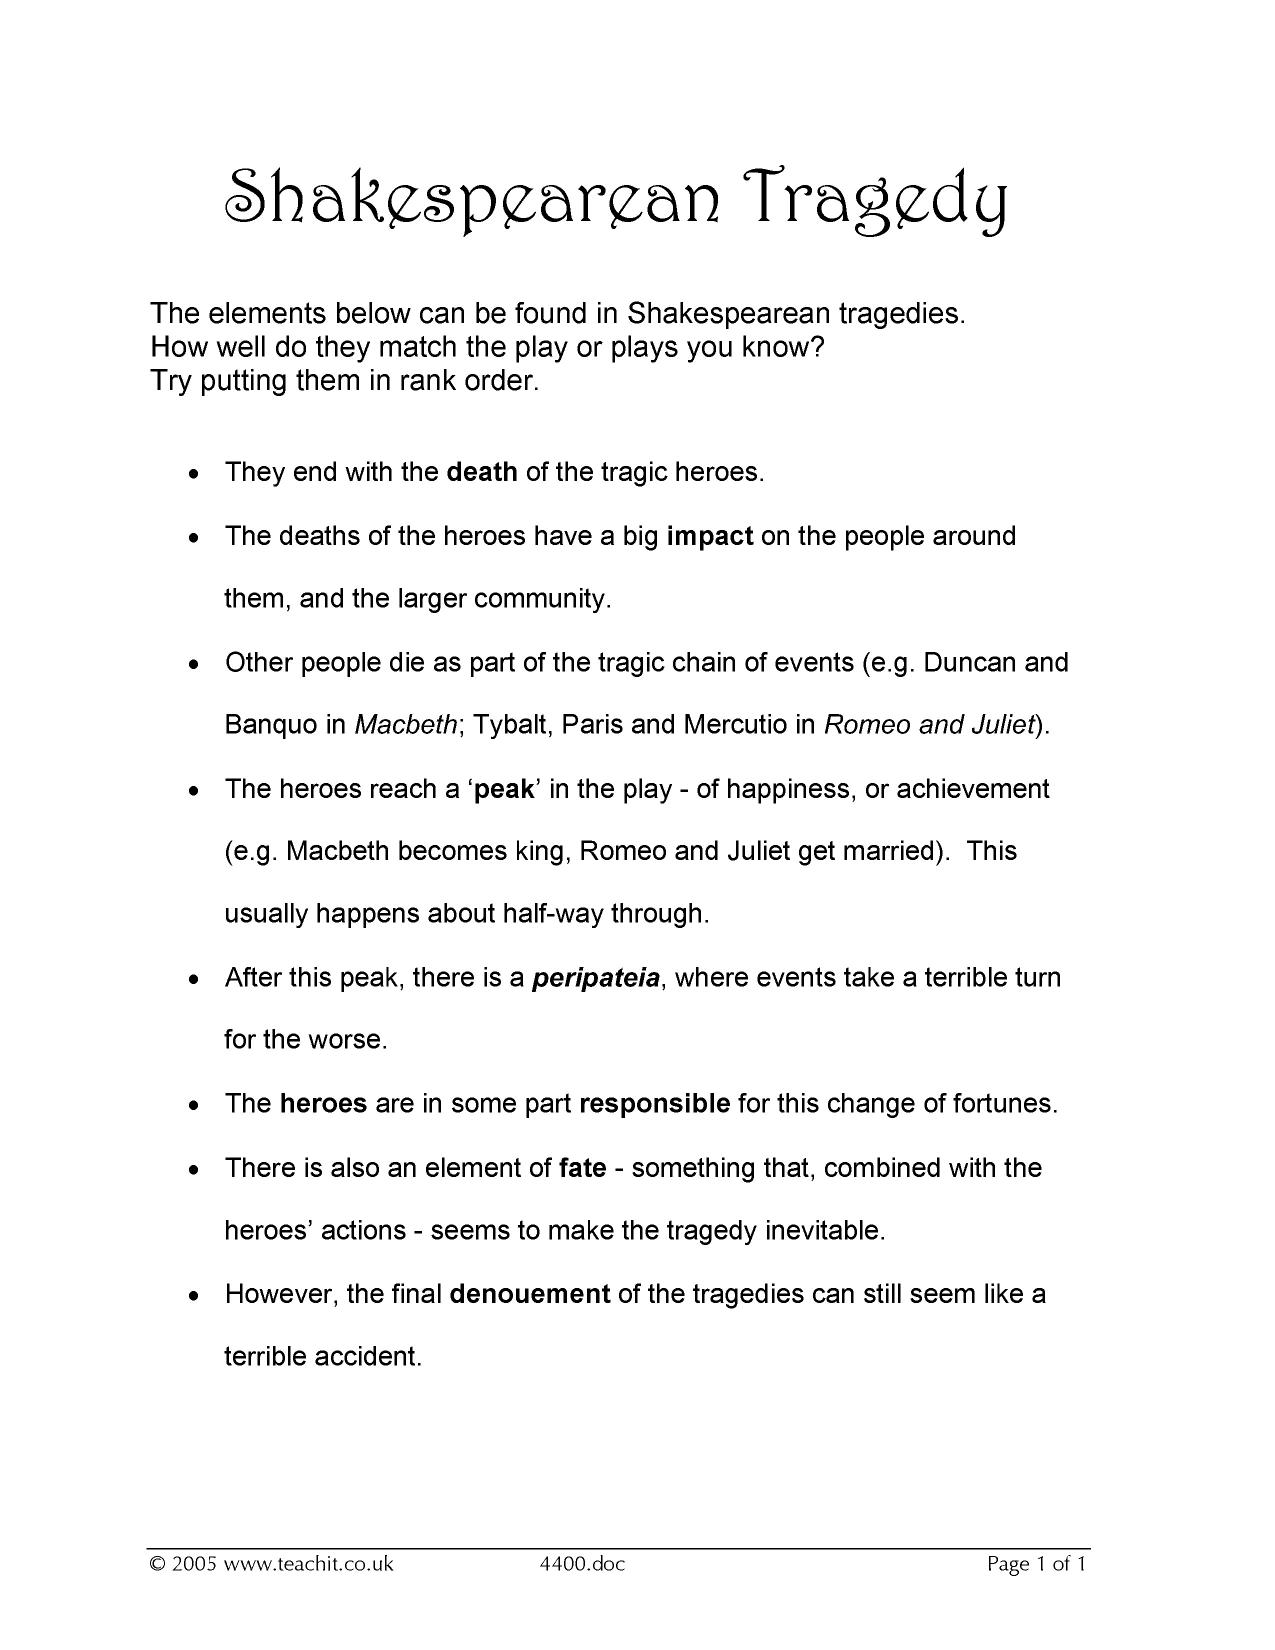 thesis on shakespearean tragedy William shakespeare is one of the most famous authors in english literature known for writing tragedies some consider shakespeare's play hamlet to be one of the best plays ever written.